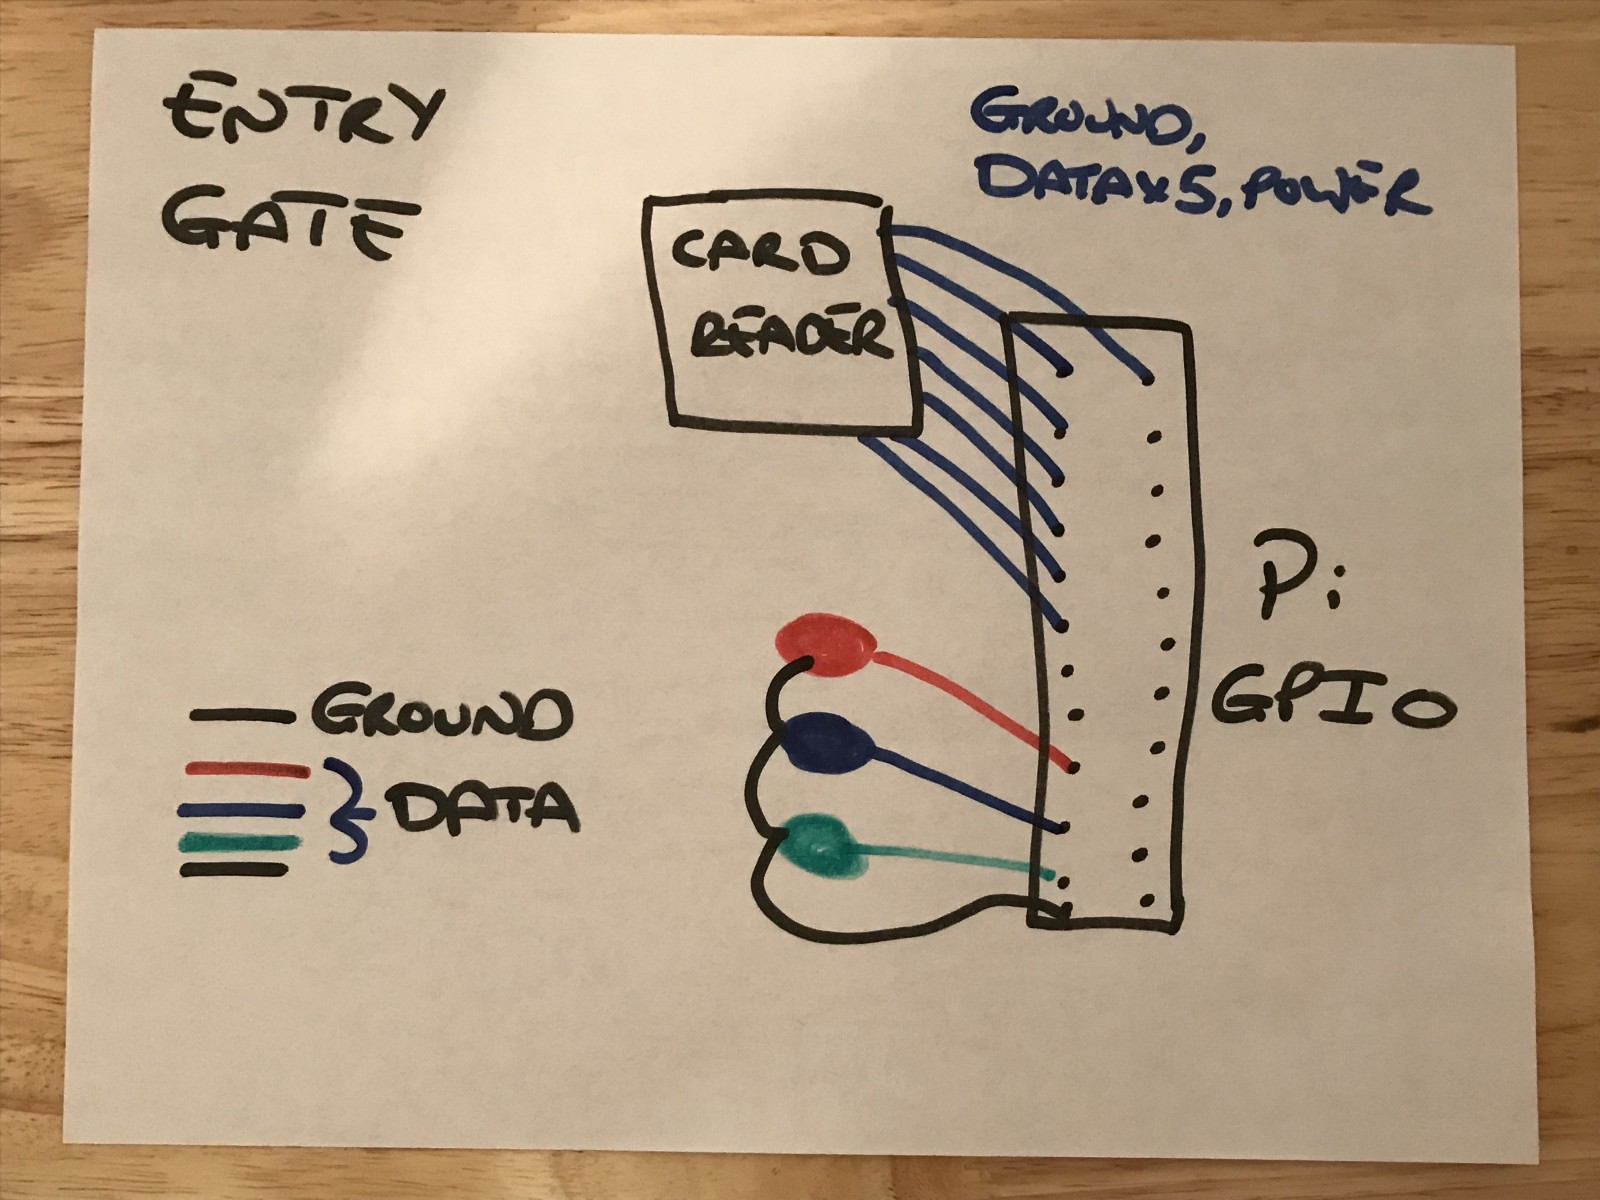 hight resolution of entry gate component high level wiring diagram blue doesn t show up particularly well